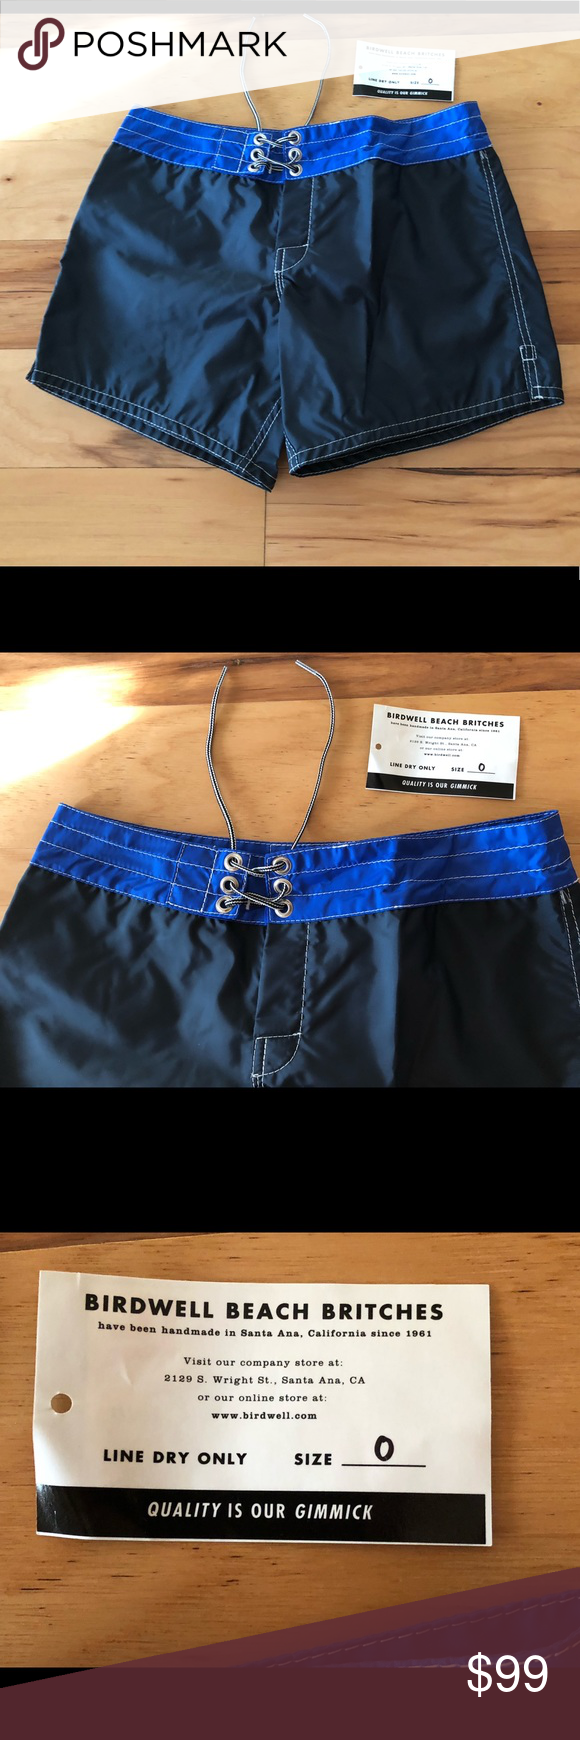 cdcecadc6e5 NWT Birdwell Beach Britches Women's Board Shorts NWT Birdwell Beach Britches  For J Crew Womens Board Shorts Swim Sz 0 You are buying the exact item in  the ...